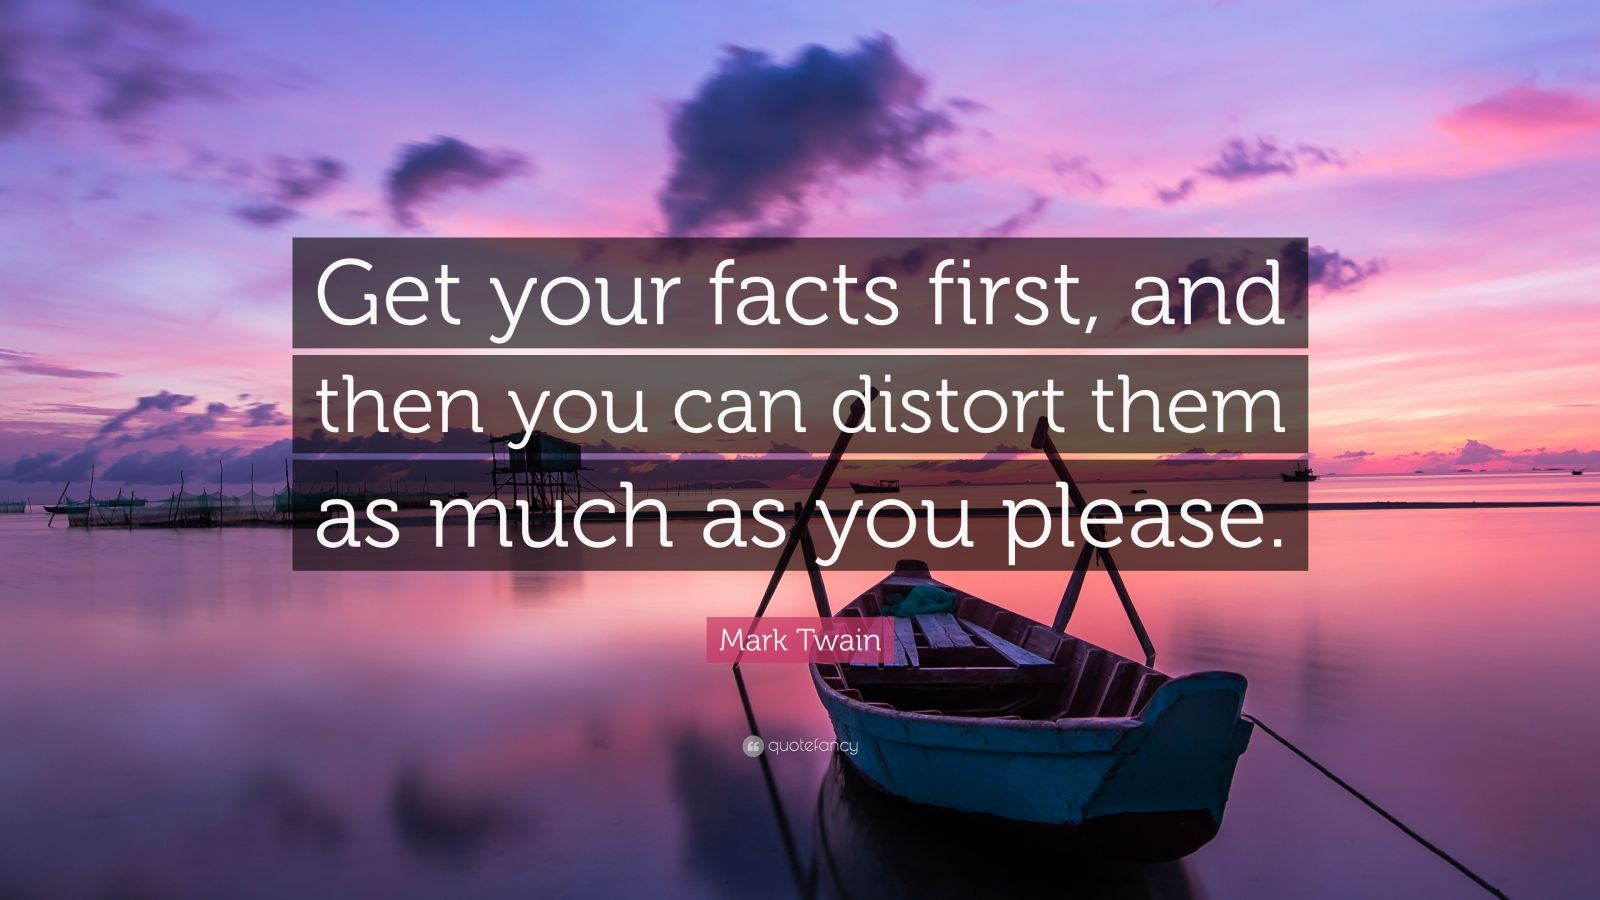 Mark Twain Quote Get Your Facts First And Then You Can Distort Them As Much As You Please